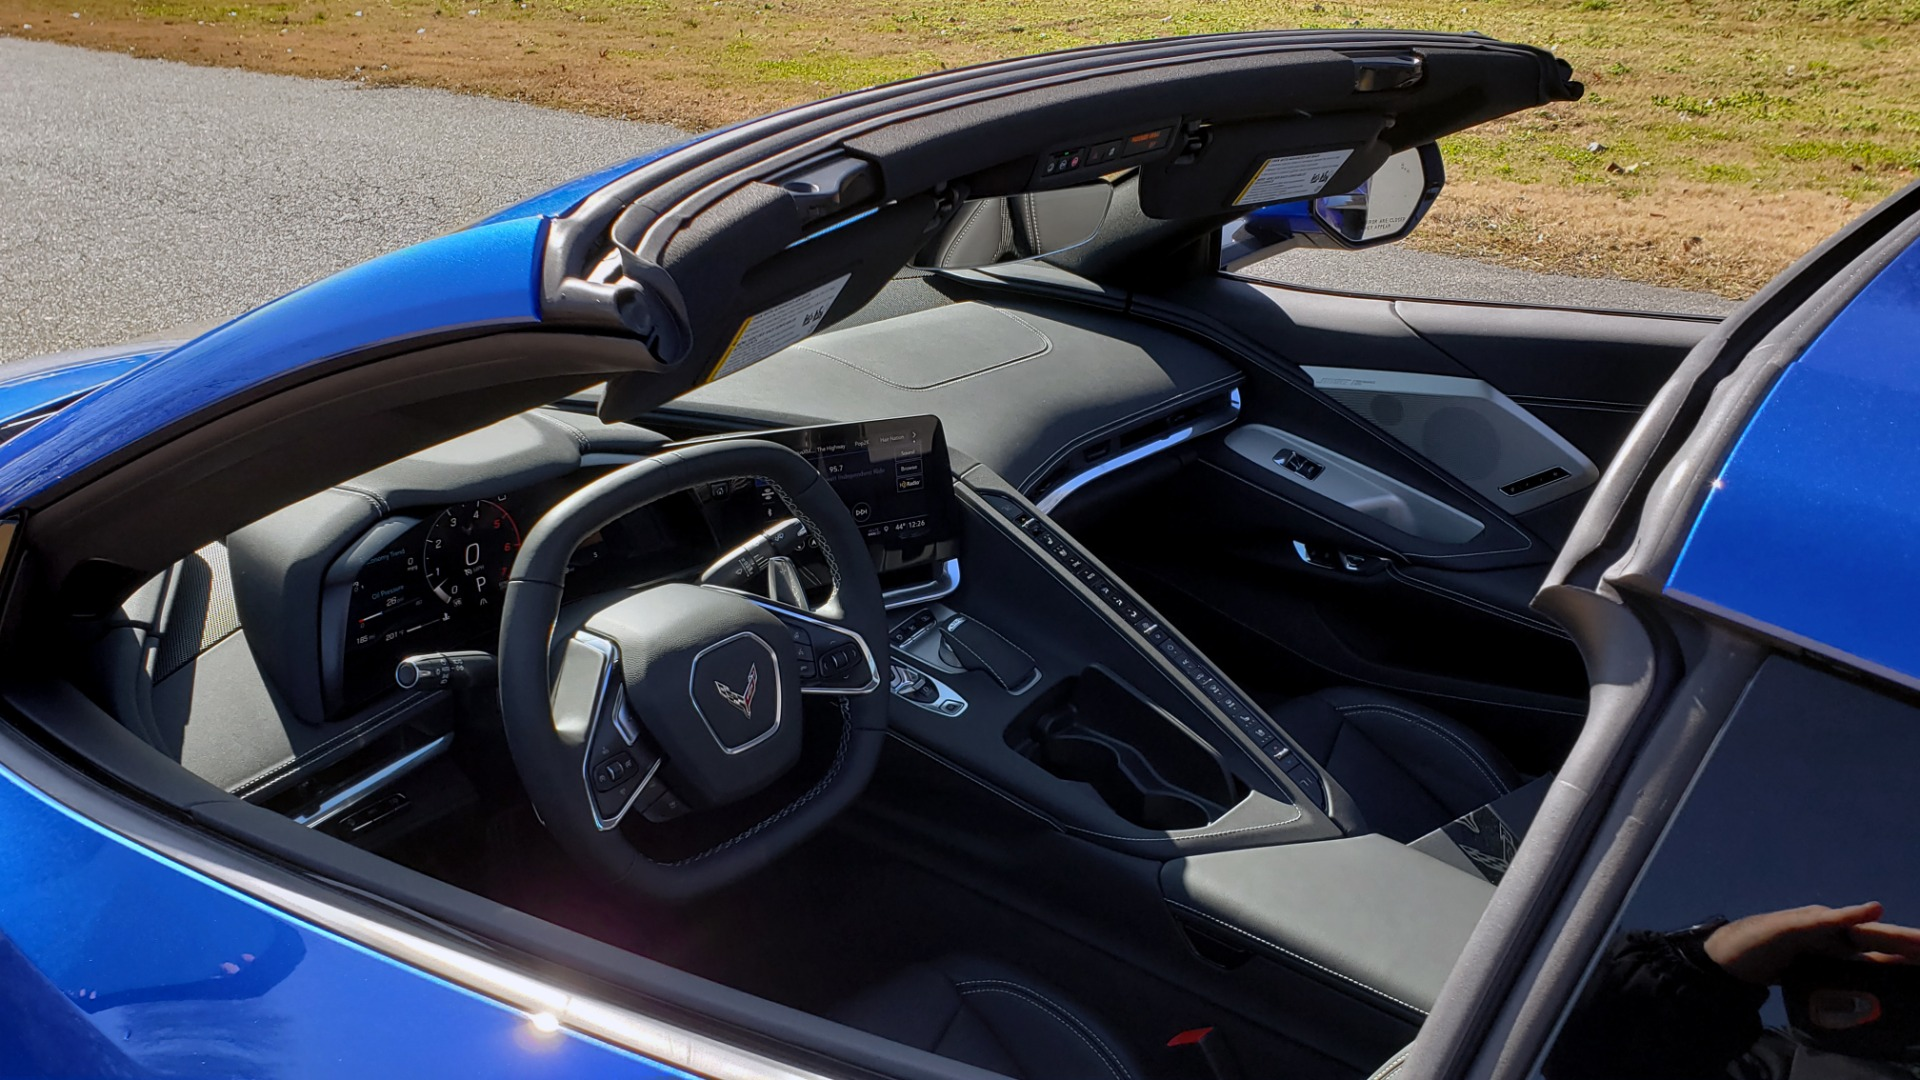 Used 2020 Chevrolet C8 CORVETTE STINGRAY 2LT COUPE / NAV / HUD / BOSE / GT2 SEATS / FRONT LIFT / REARVIEW for sale Sold at Formula Imports in Charlotte NC 28227 22